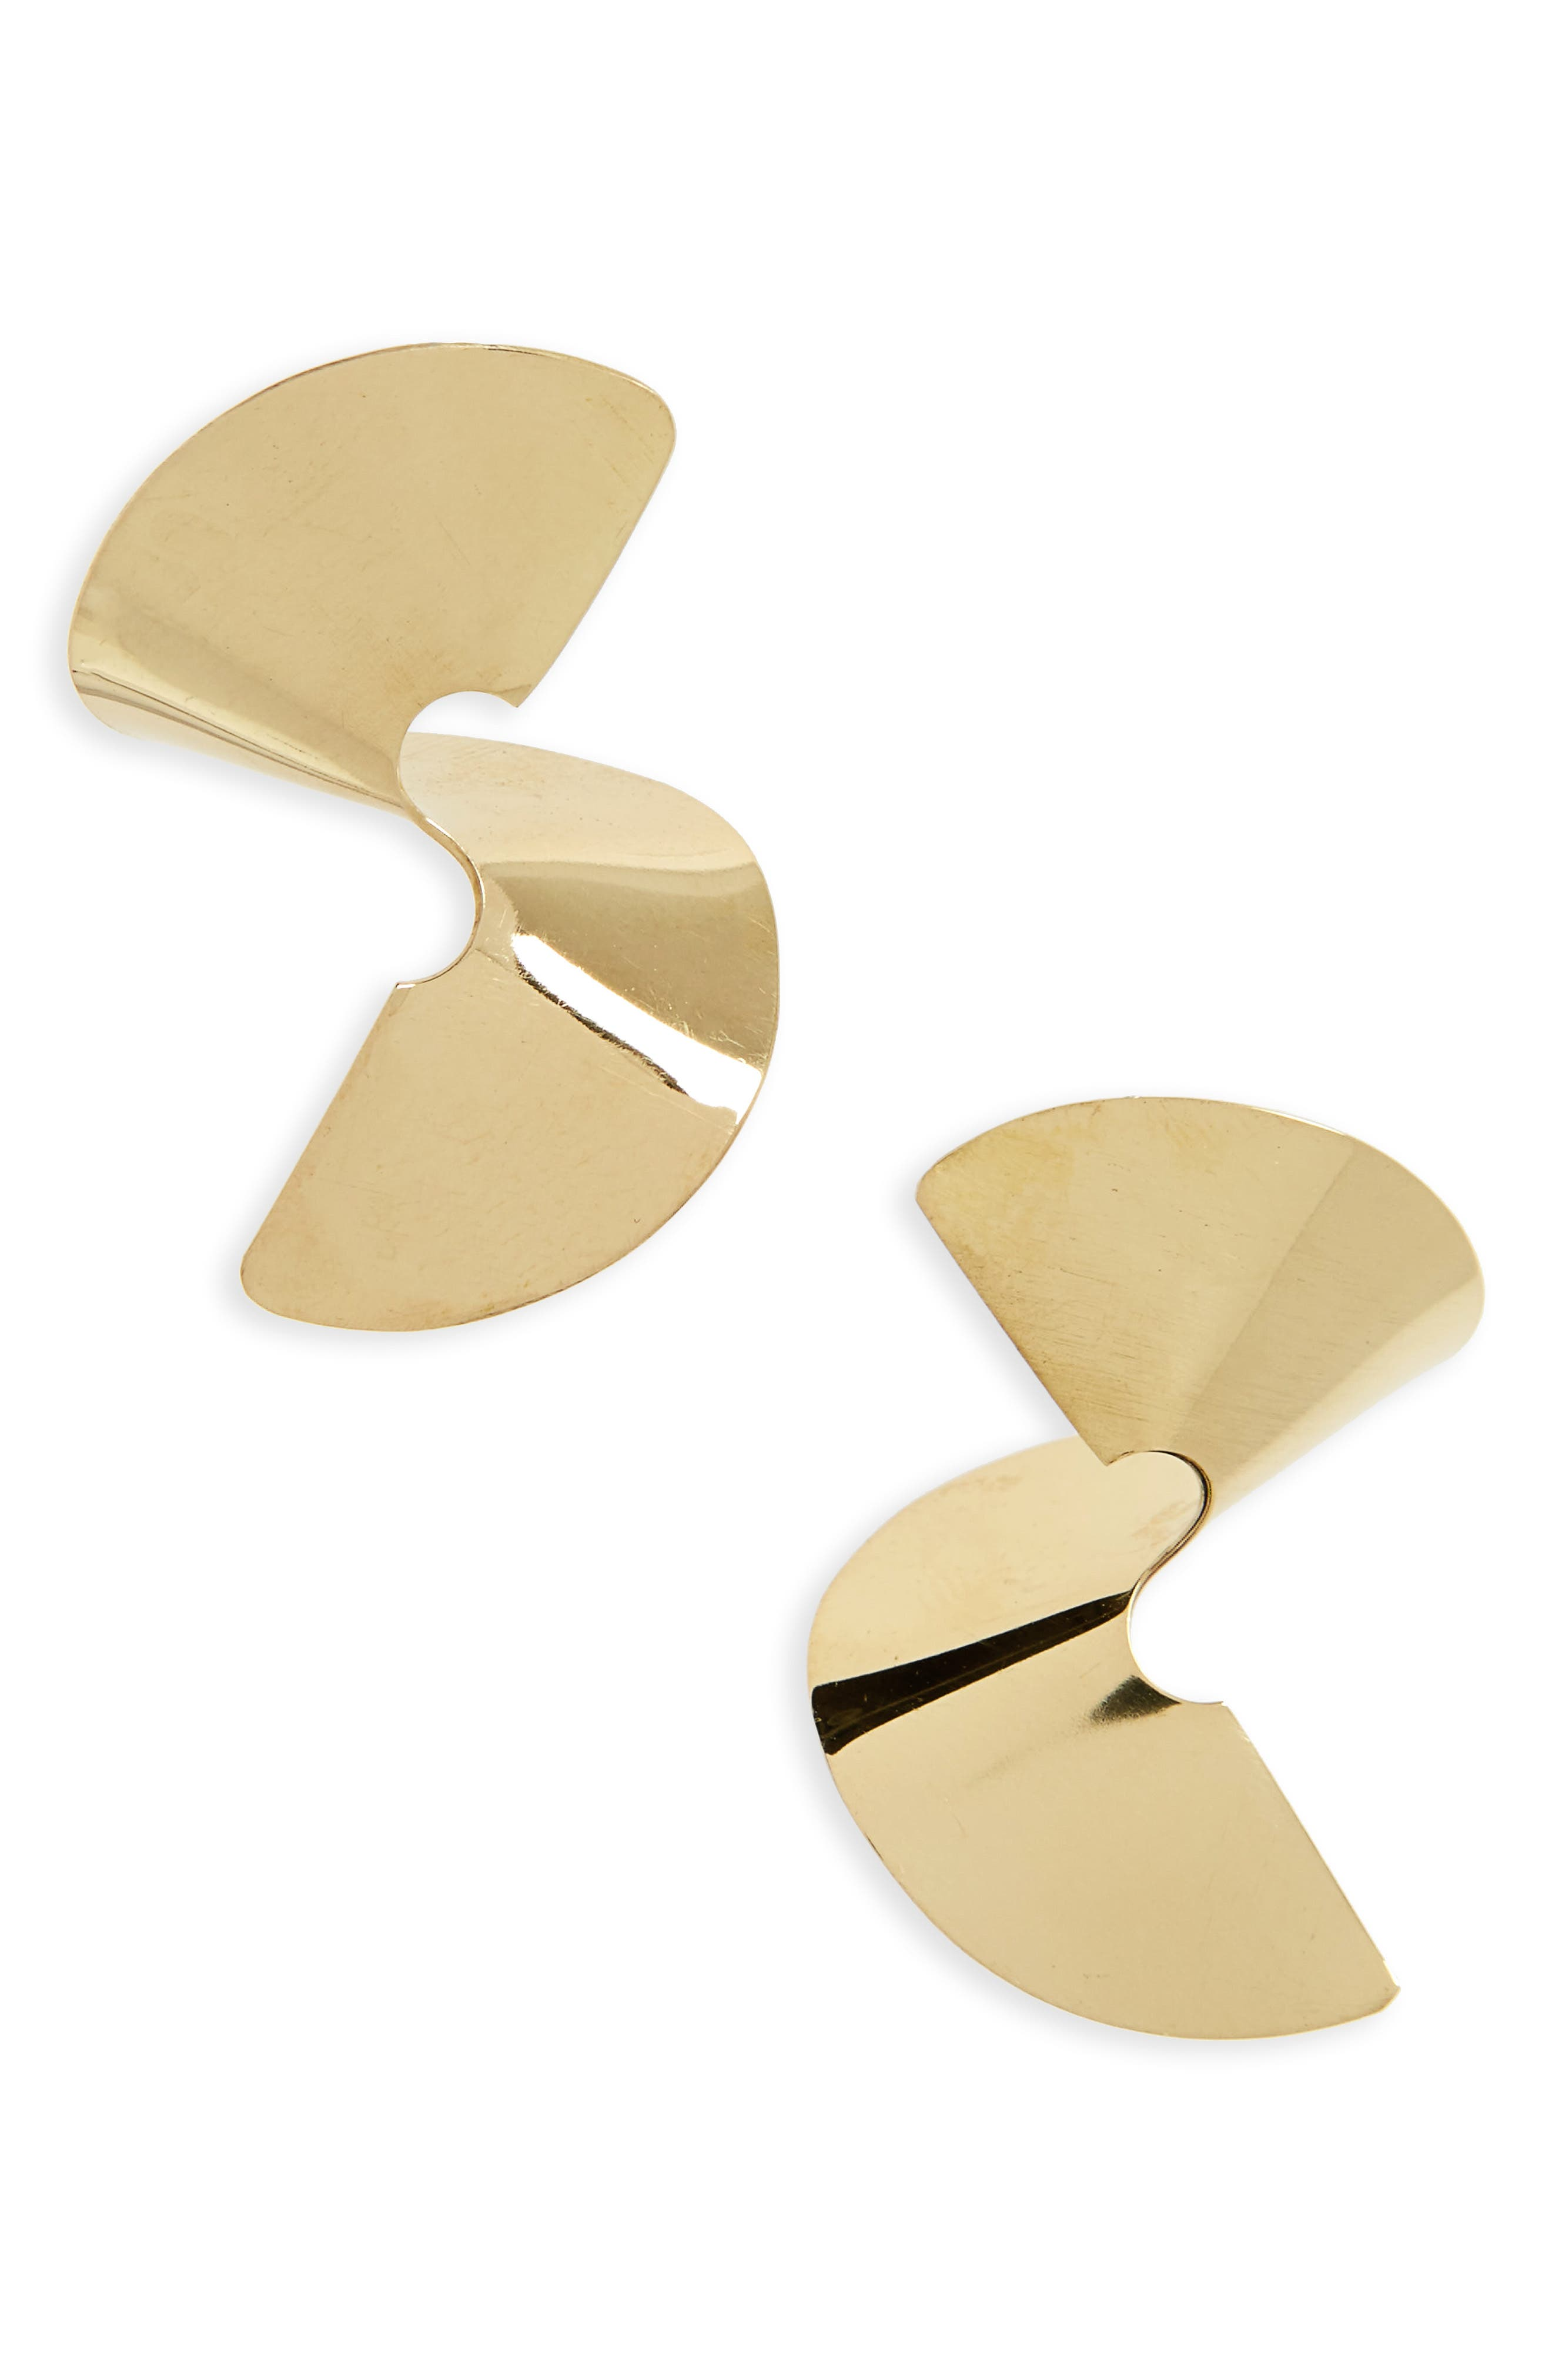 Sia Twisted Stud Earrings,                             Main thumbnail 1, color,                             Brass